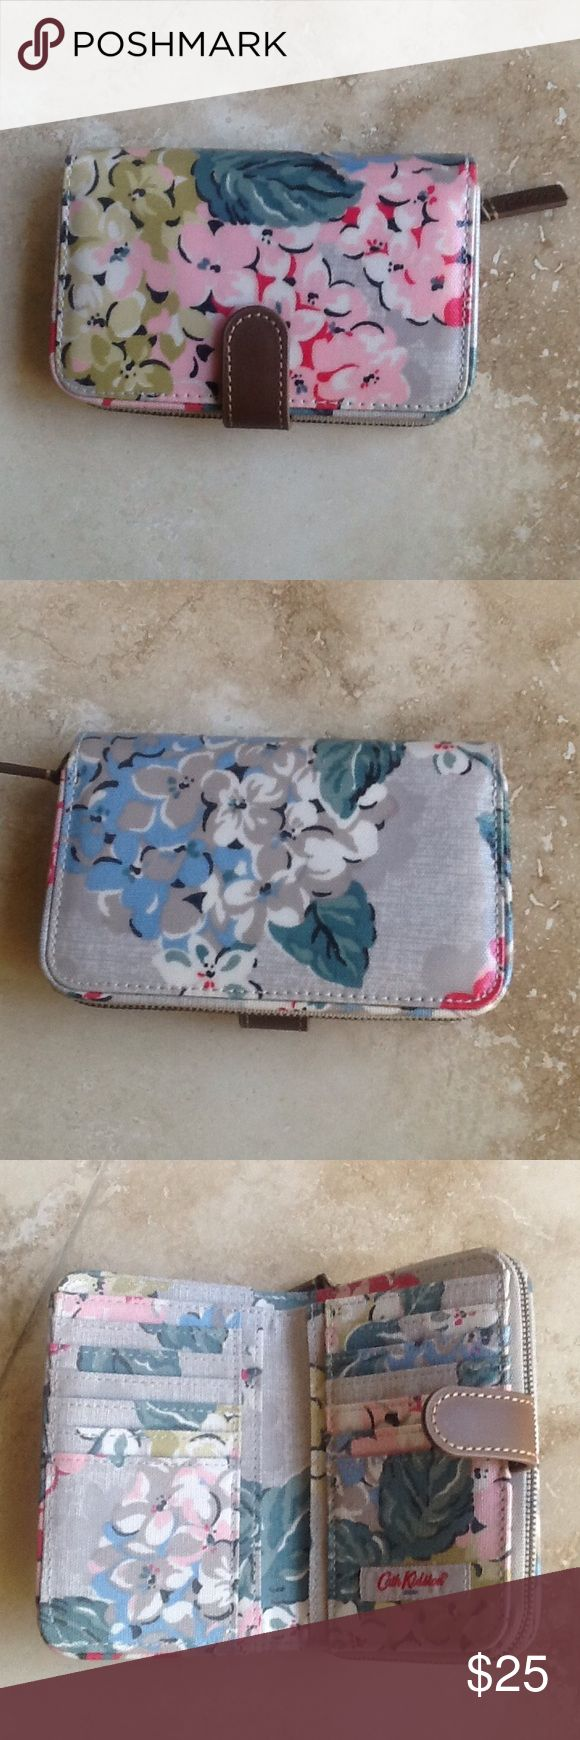 Cath Kidston wallet            NWOT New without tickets... Measures about 6 by 4. Zipper compartment. Cath Kidston Bags Wallets